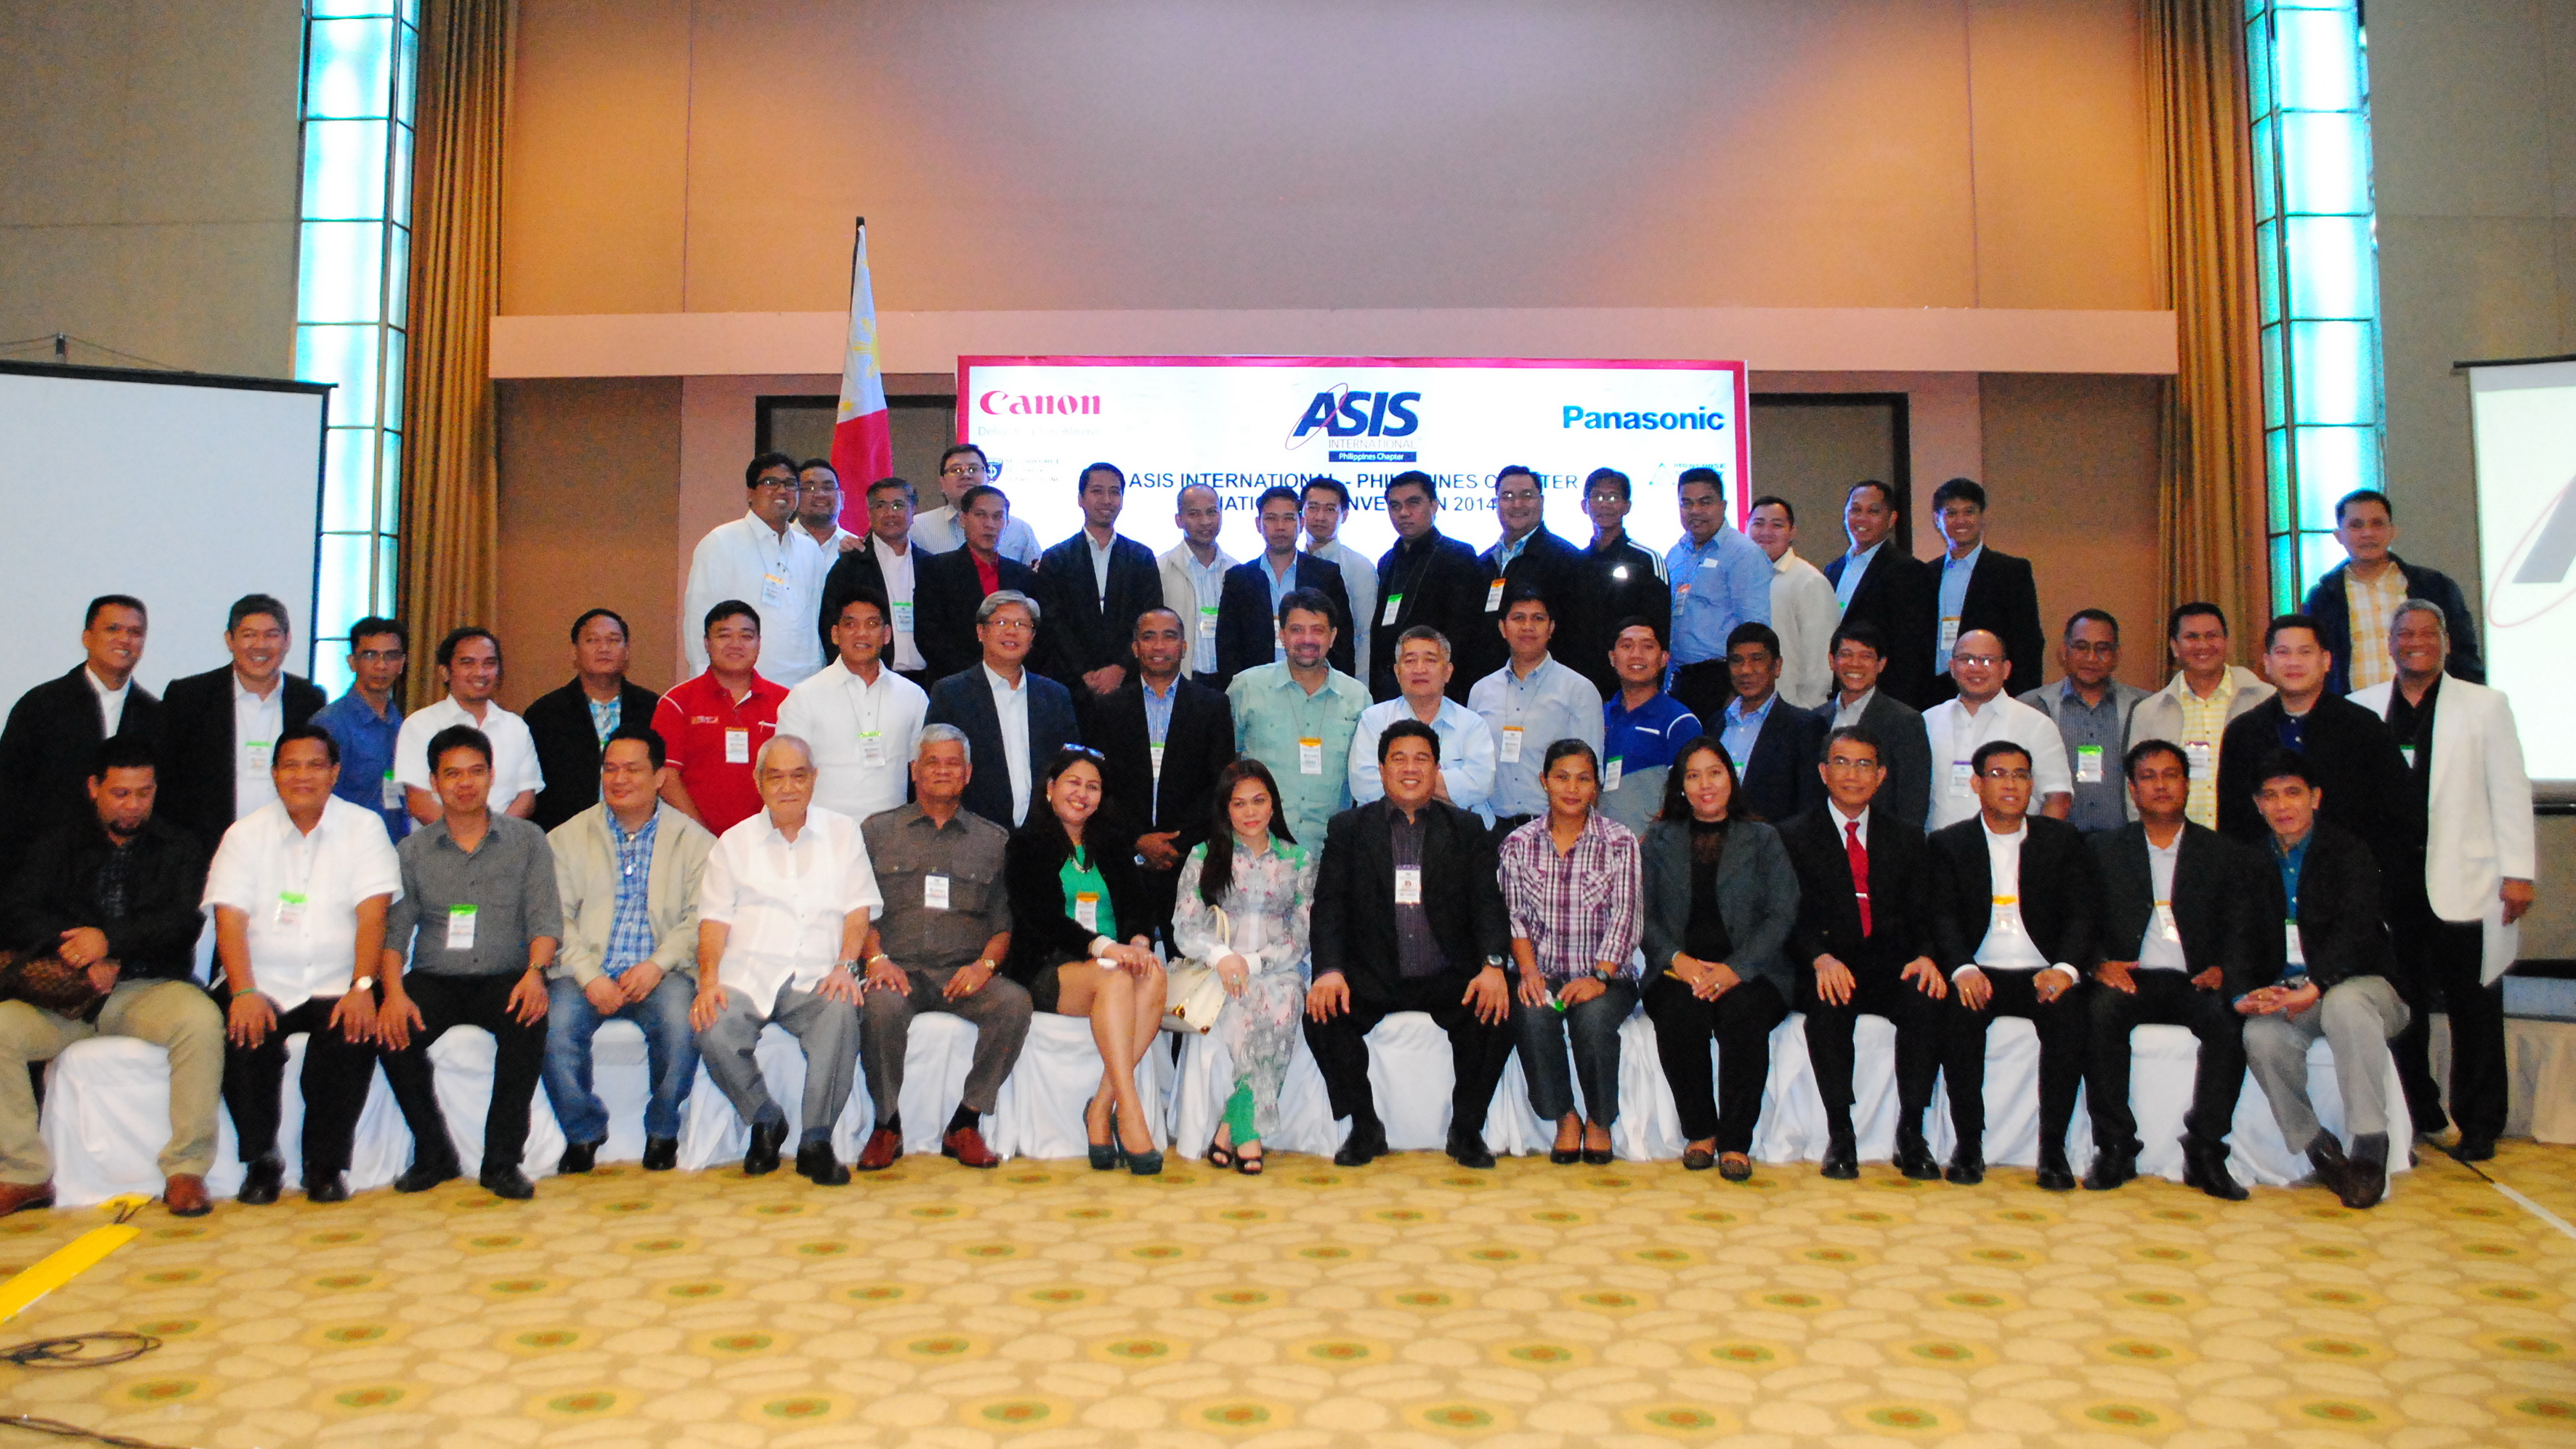 ASIS International Philippines Chapter Holds 2014 National Convention